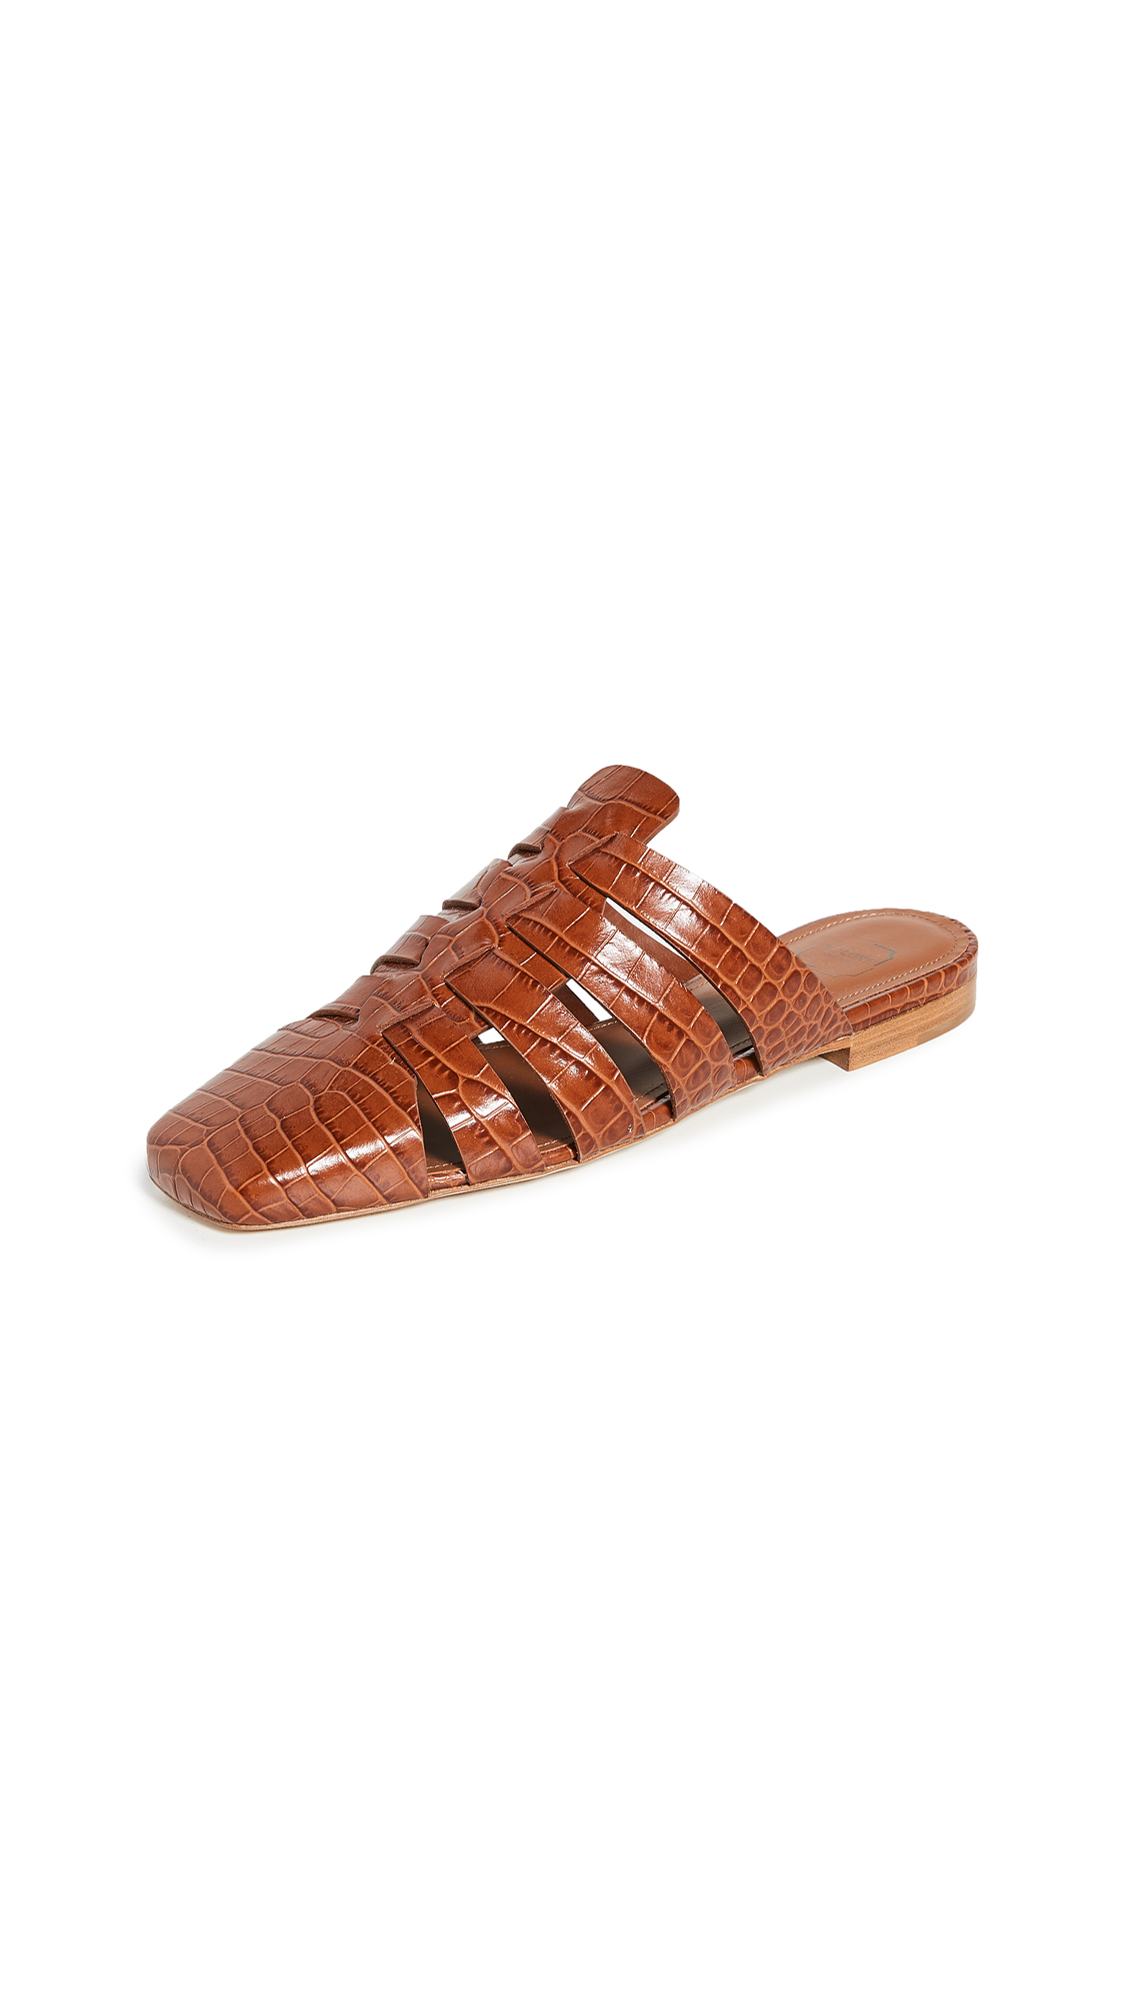 Buy Malone Souliers Diana Mules online, shop Malone Souliers